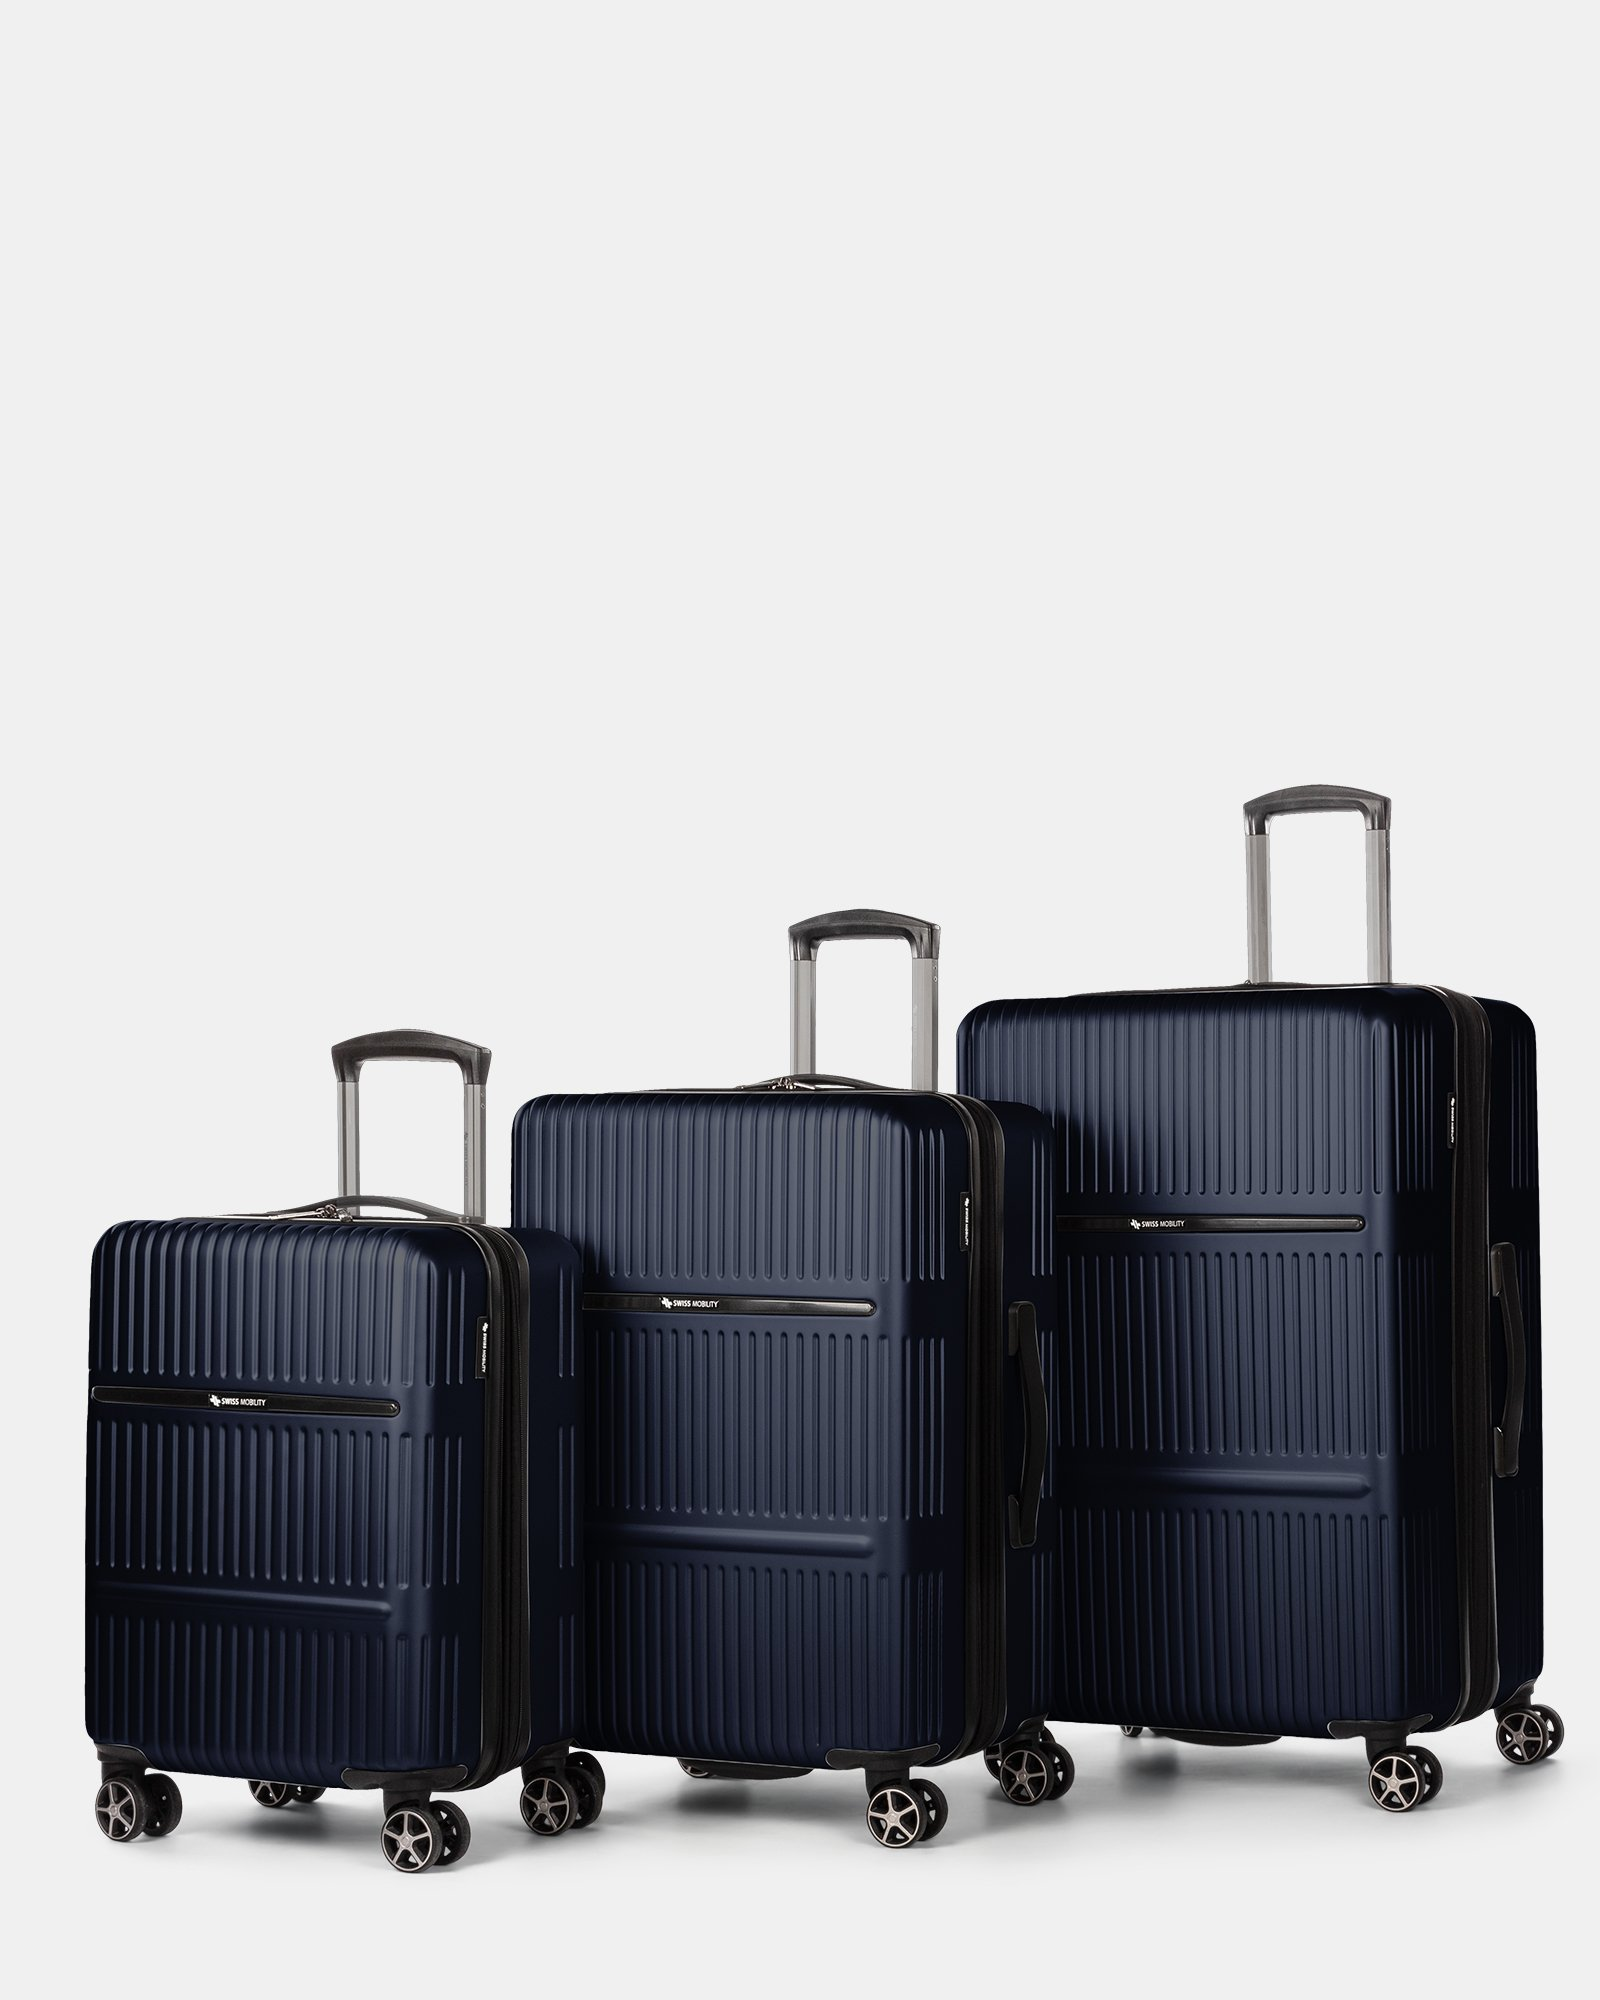 Highway – Lightweight Hardside 3-Piece Luggage Set with double spinner wheels (8 wheels) - Blue - Swiss Mobility - Zoom